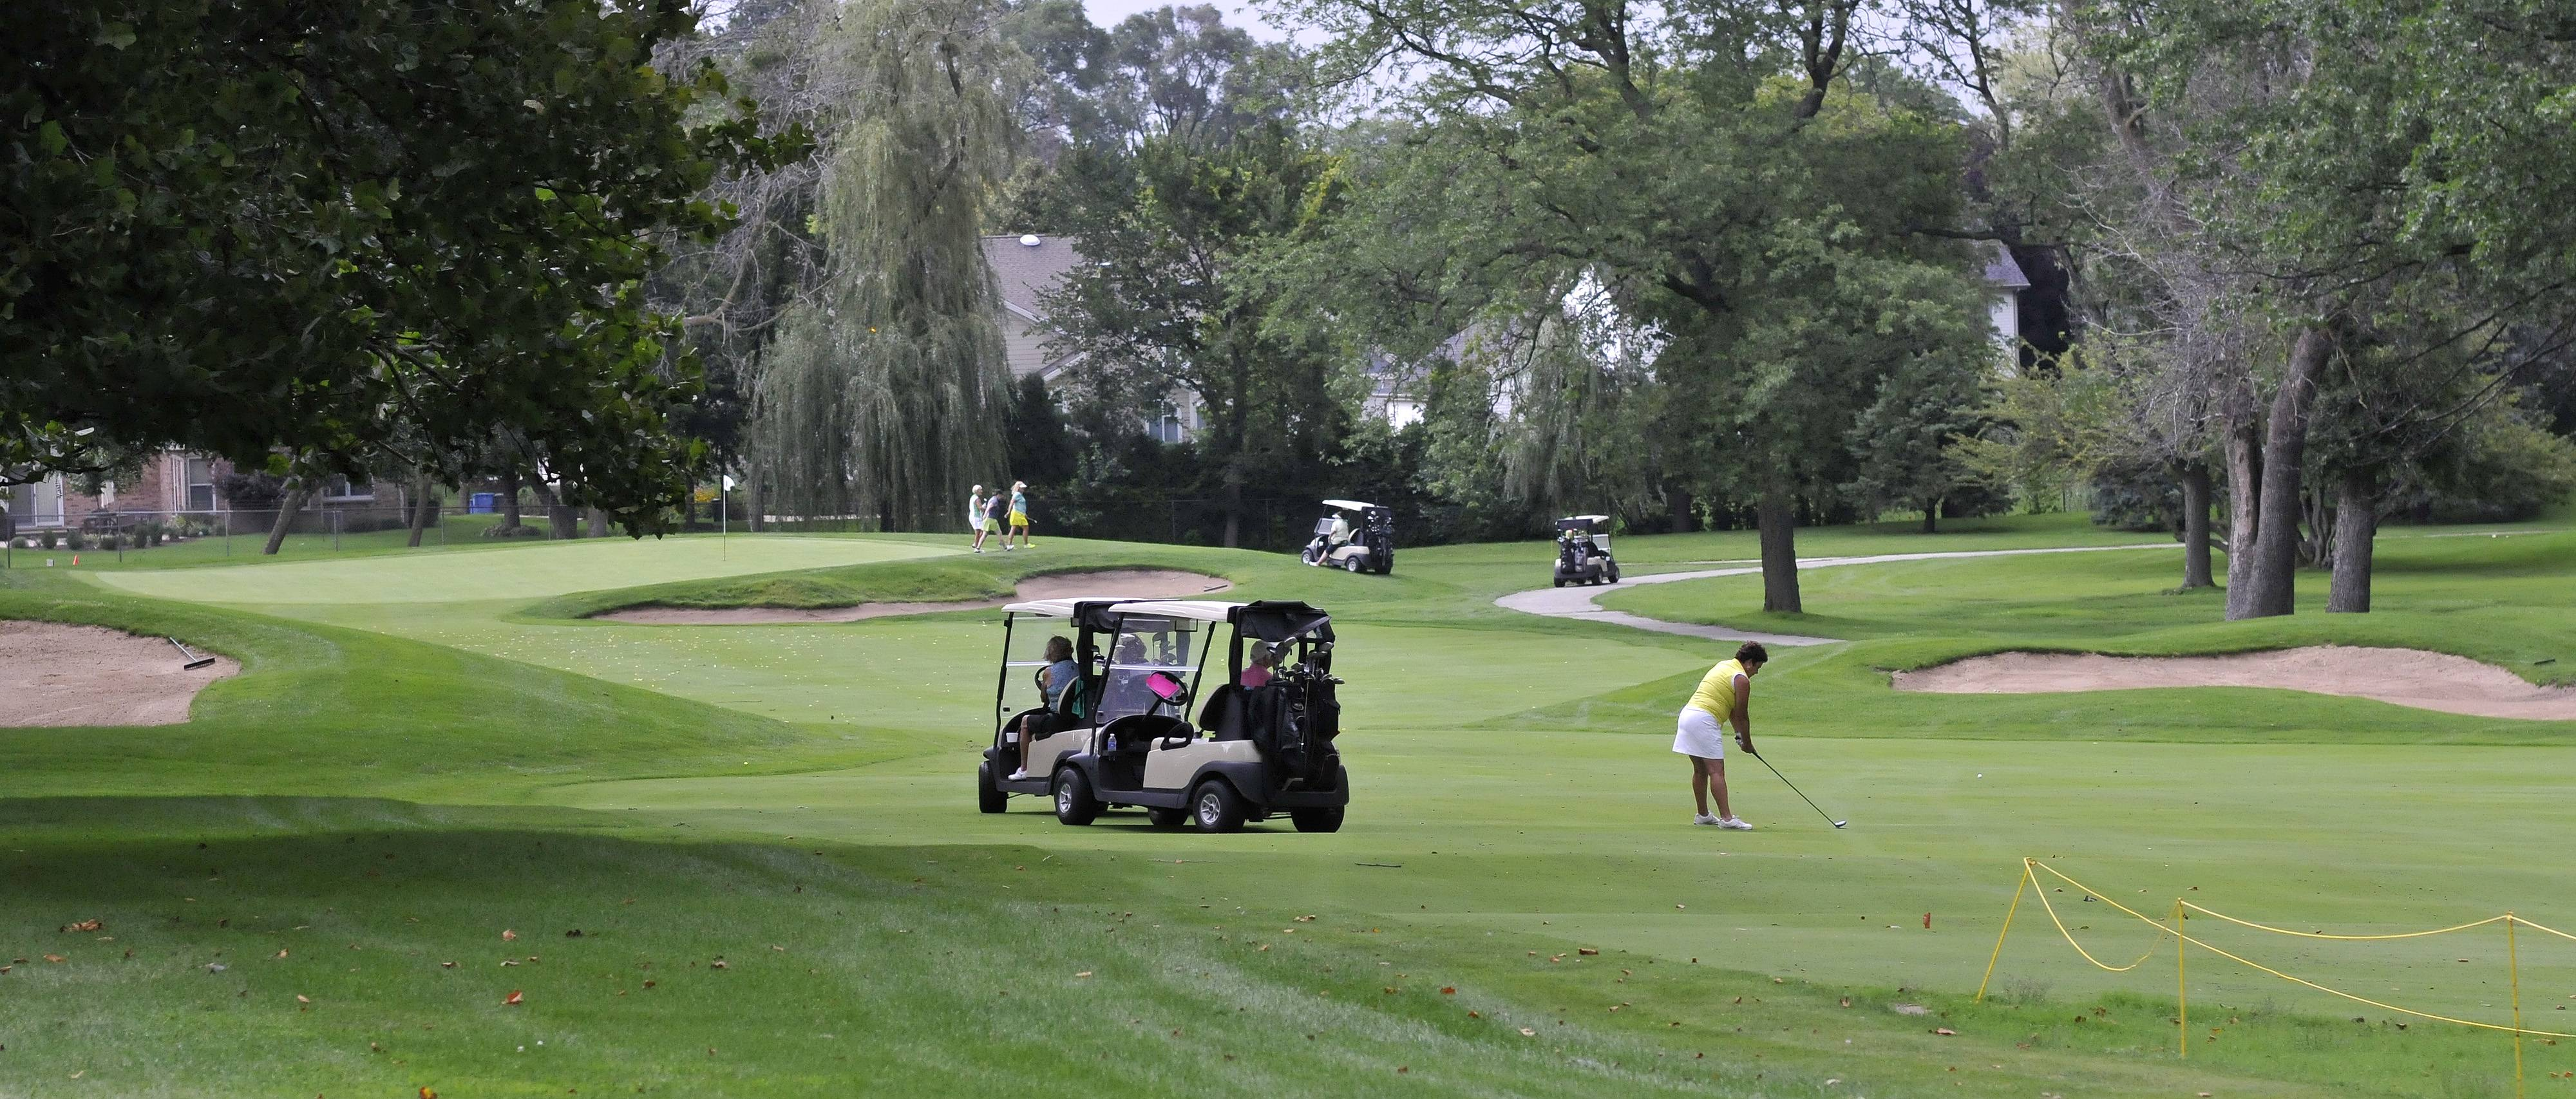 Itasca residents lobbying to preserve country club site